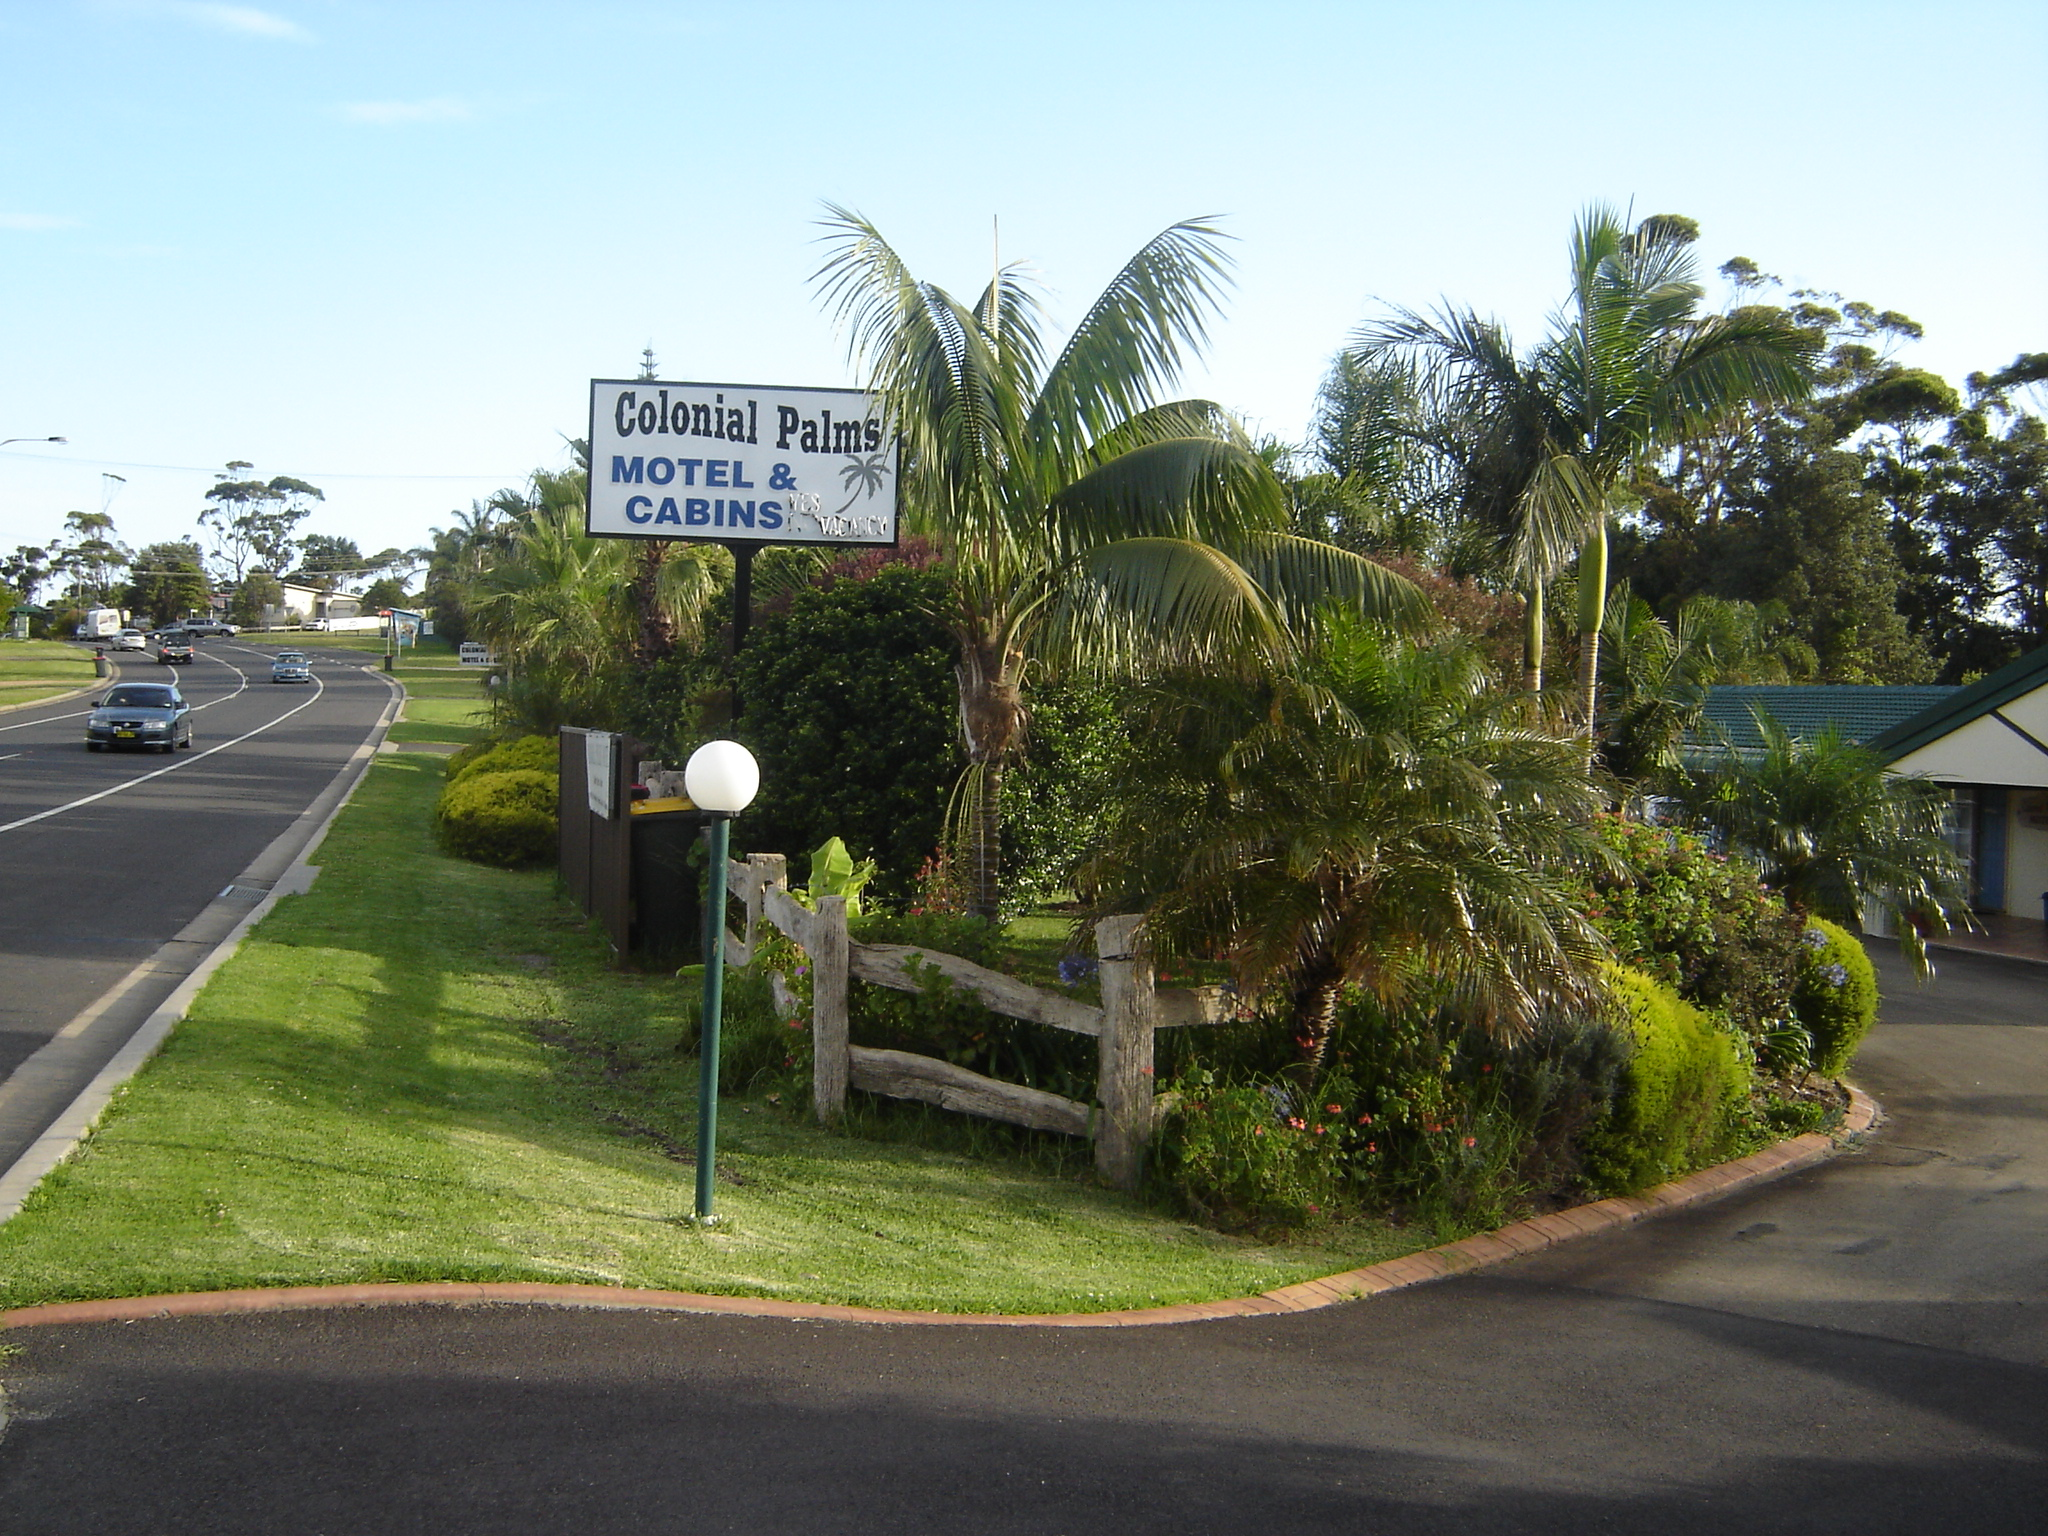 Colonial Palms Motel & Cabins